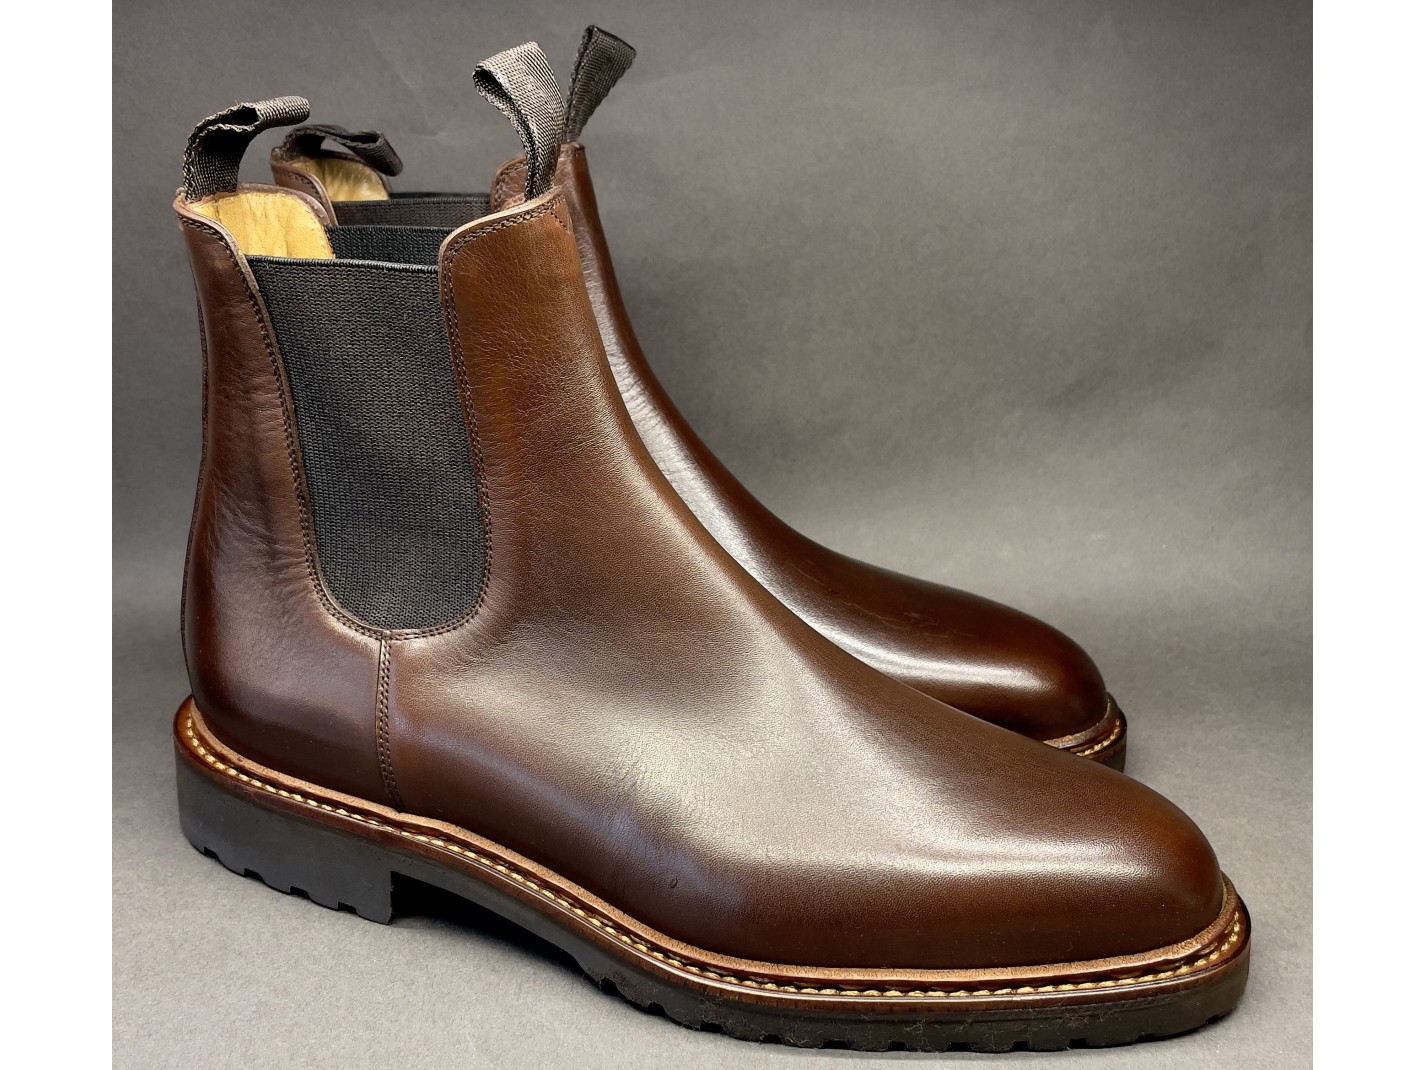 LOAFERS PICOTS Dark Brown